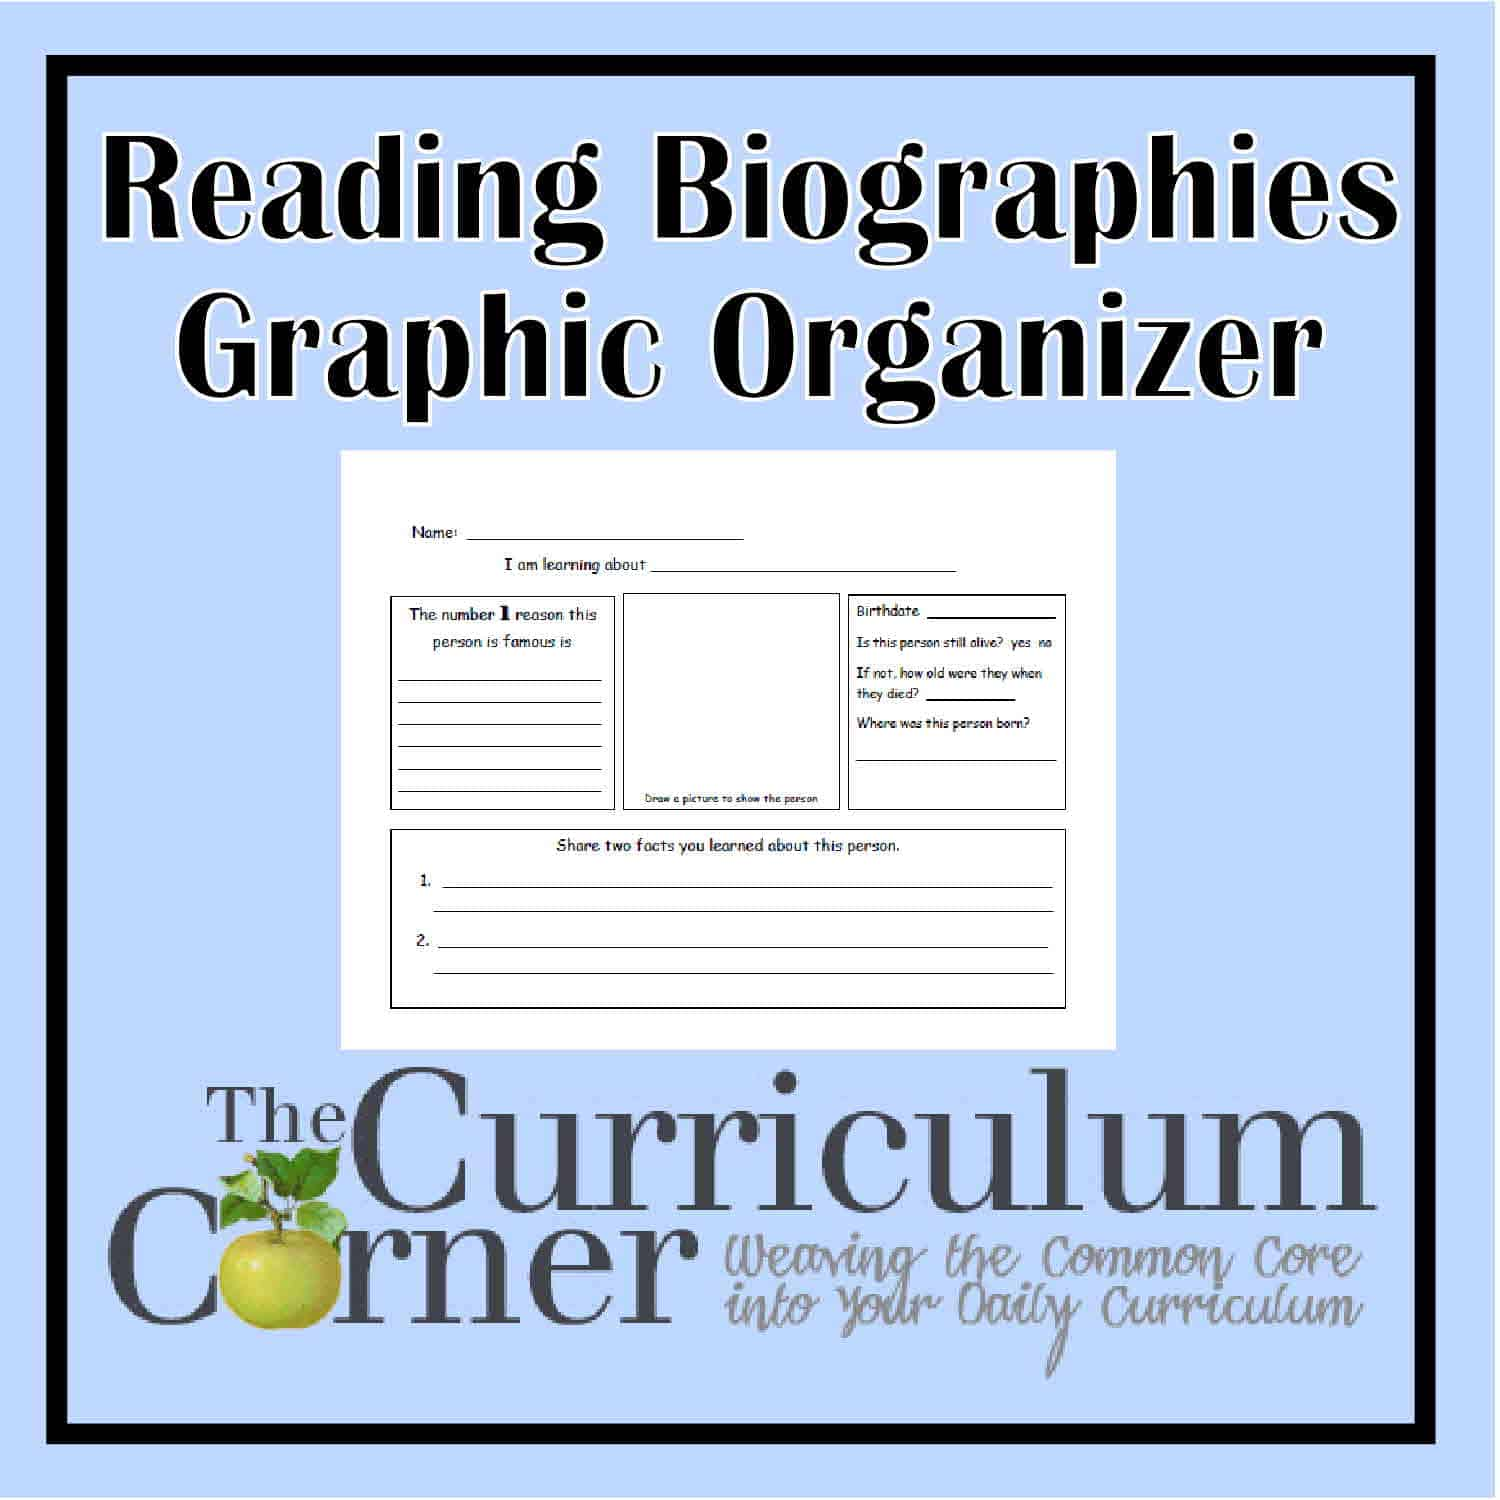 Biography Reading Graphic Organizer